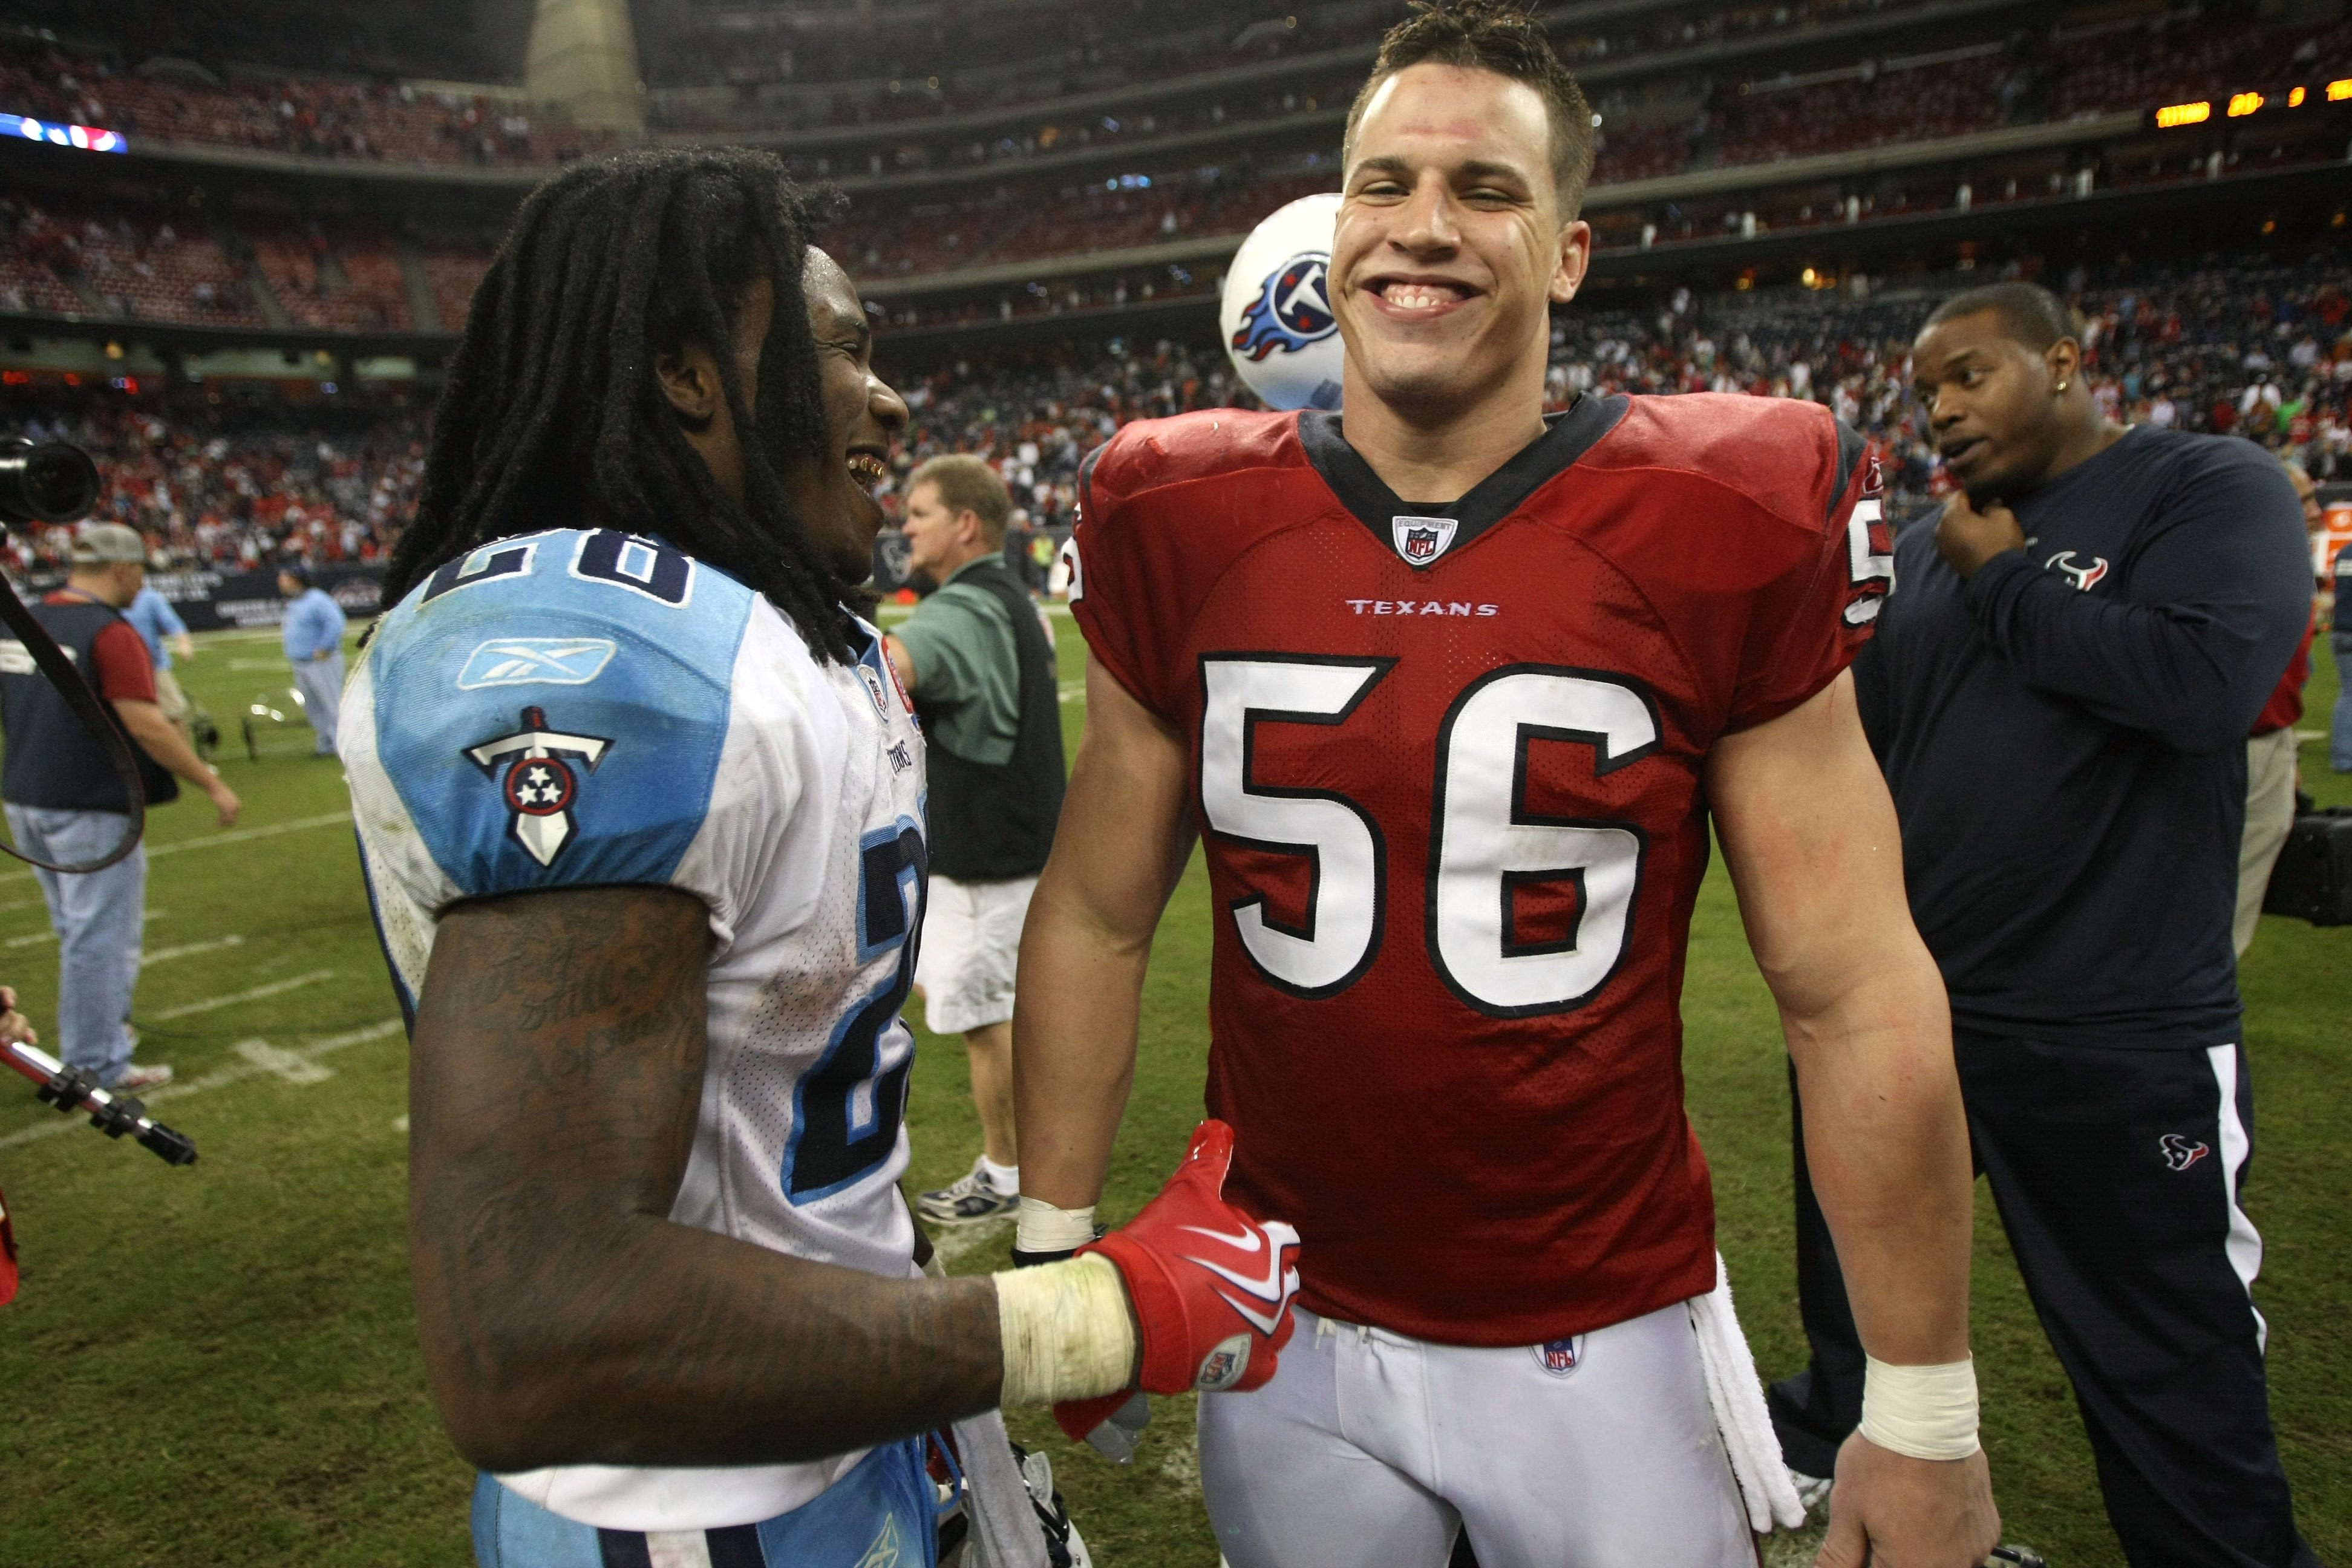 HOUSTON - NOVEMBER 23: Chris Johnson #28 of the Tennessee Titans a nd Brian cushing #56 of the Houston Texans laugh after the game on November 23, 2009  at Reliant Stadium in Houston, Texas.  The Titans won 20-17.  (Photo by Stephen Dunn/Getty Images)